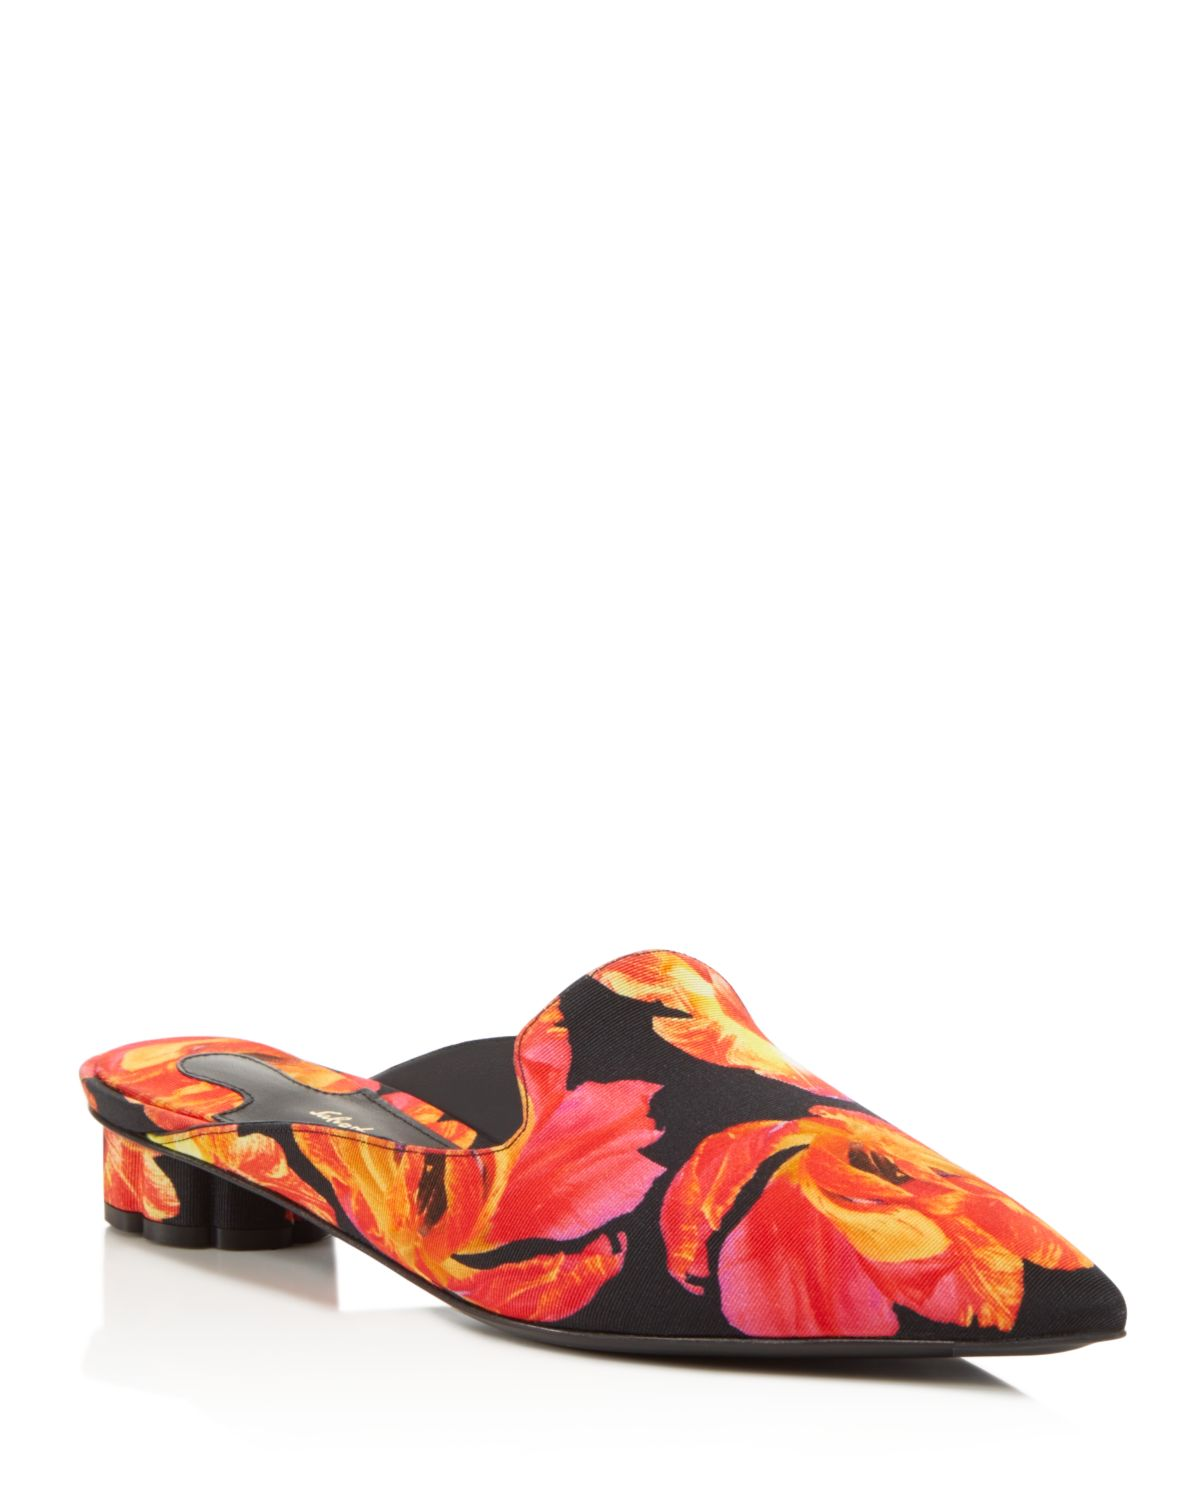 Salvatore Ferragamo Women's Floral-Print Pointed Toe Mules